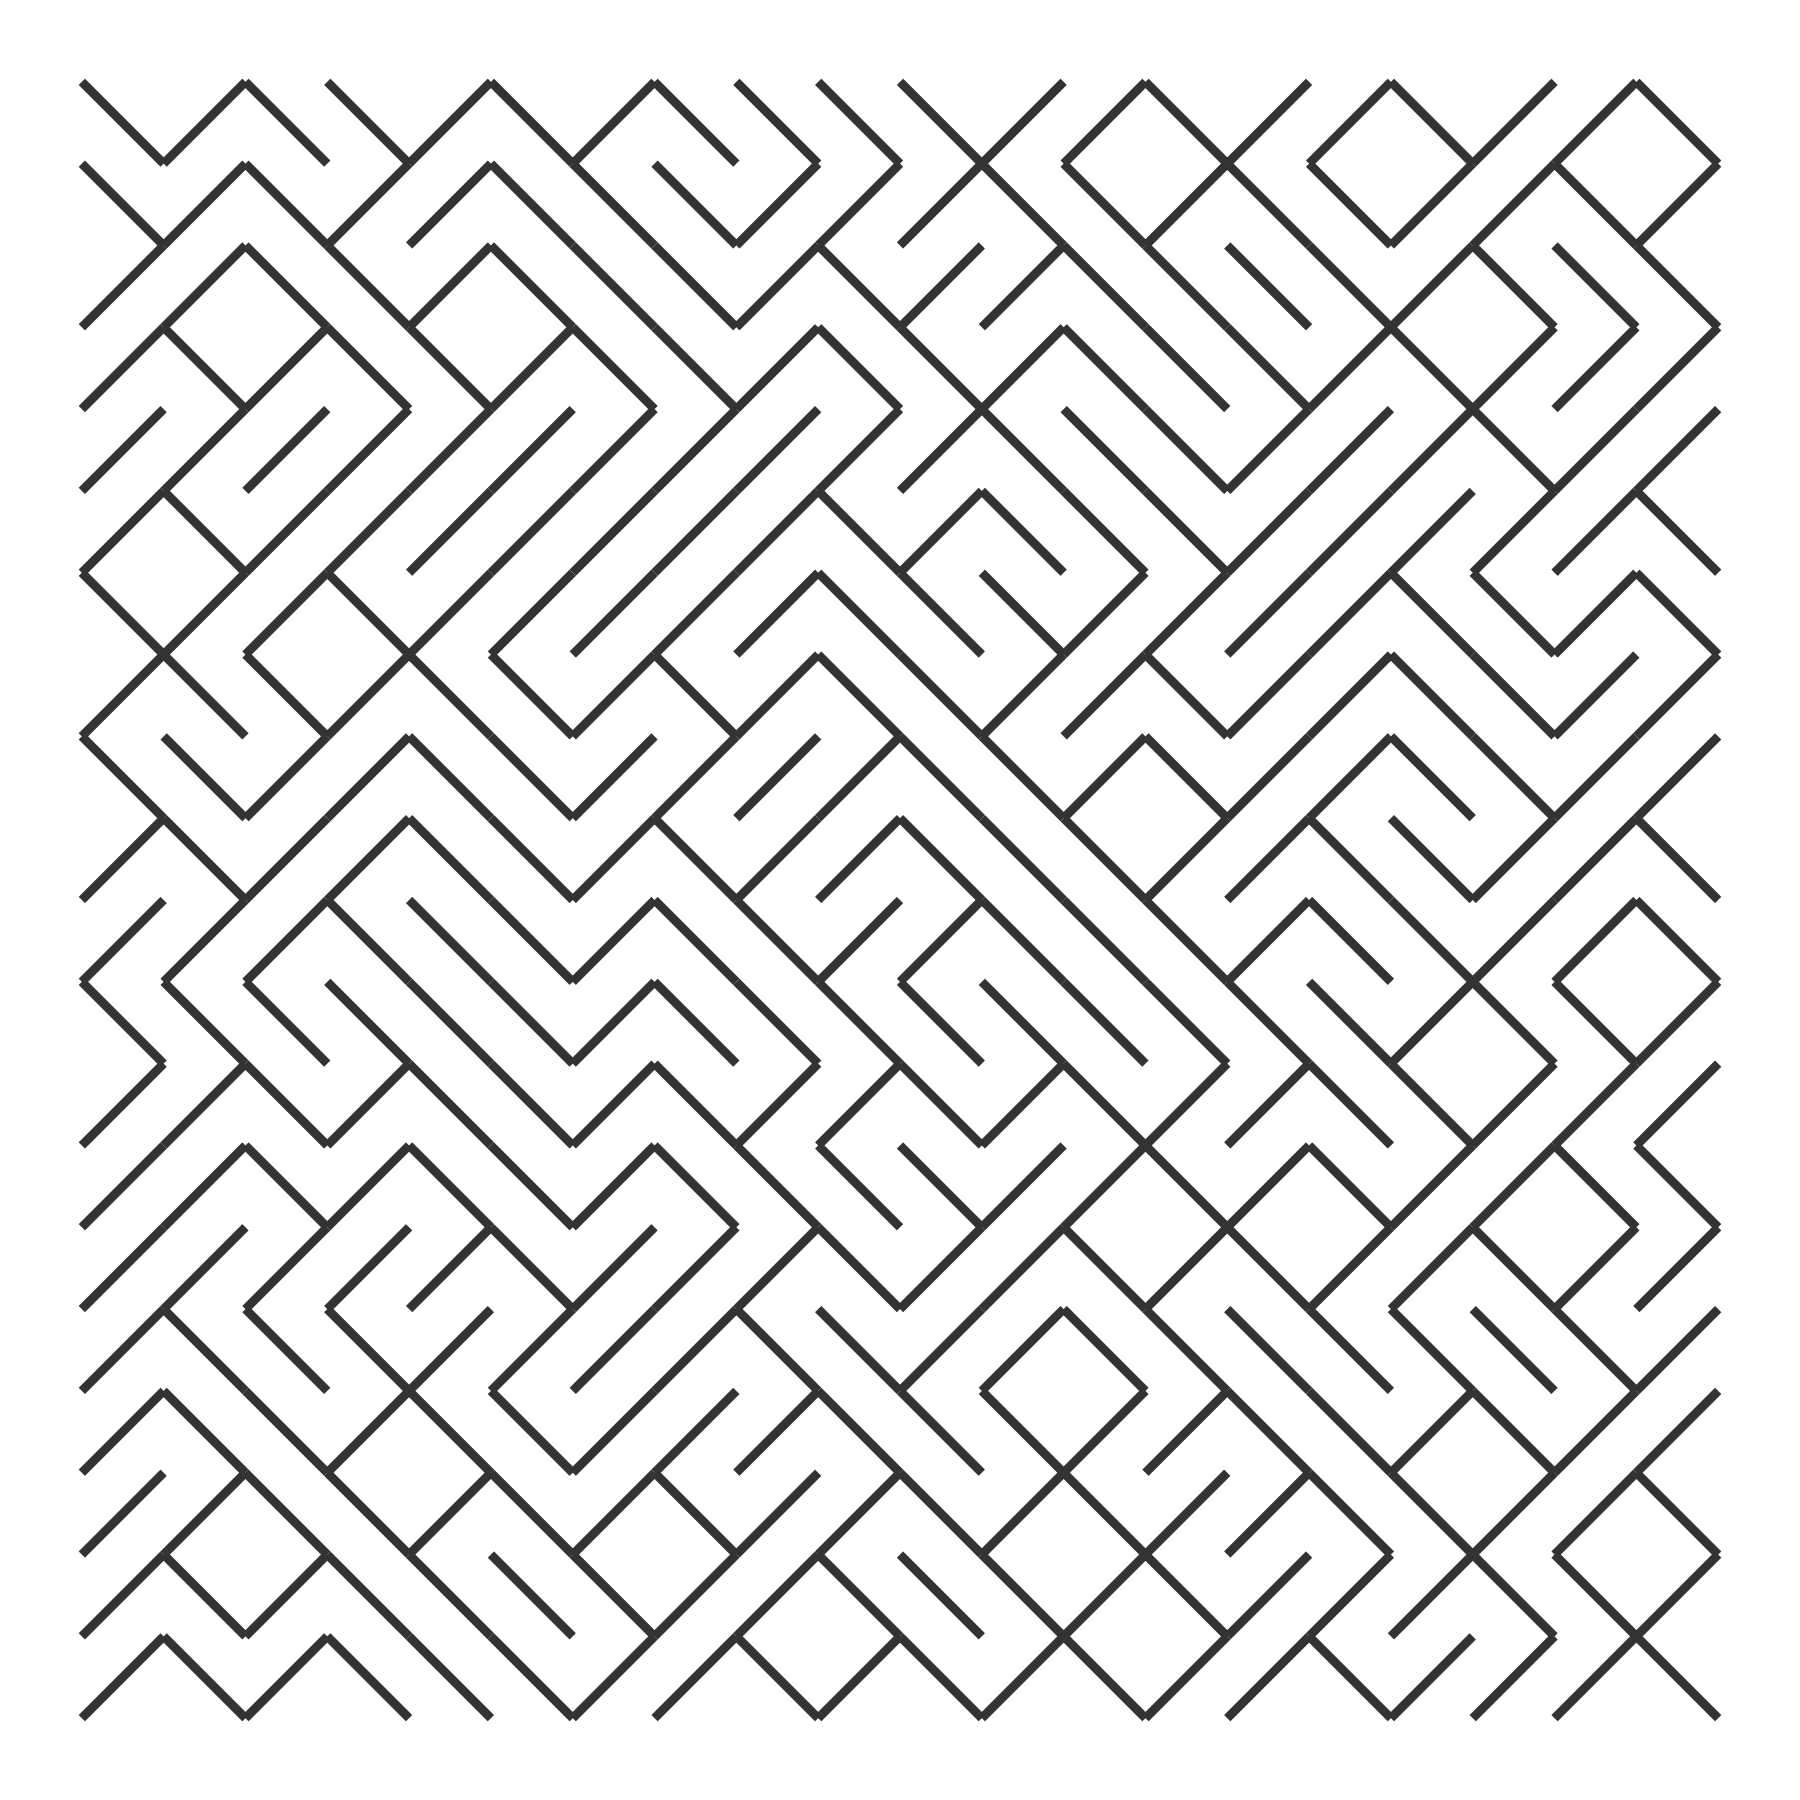 A maze with 50% flipping probability